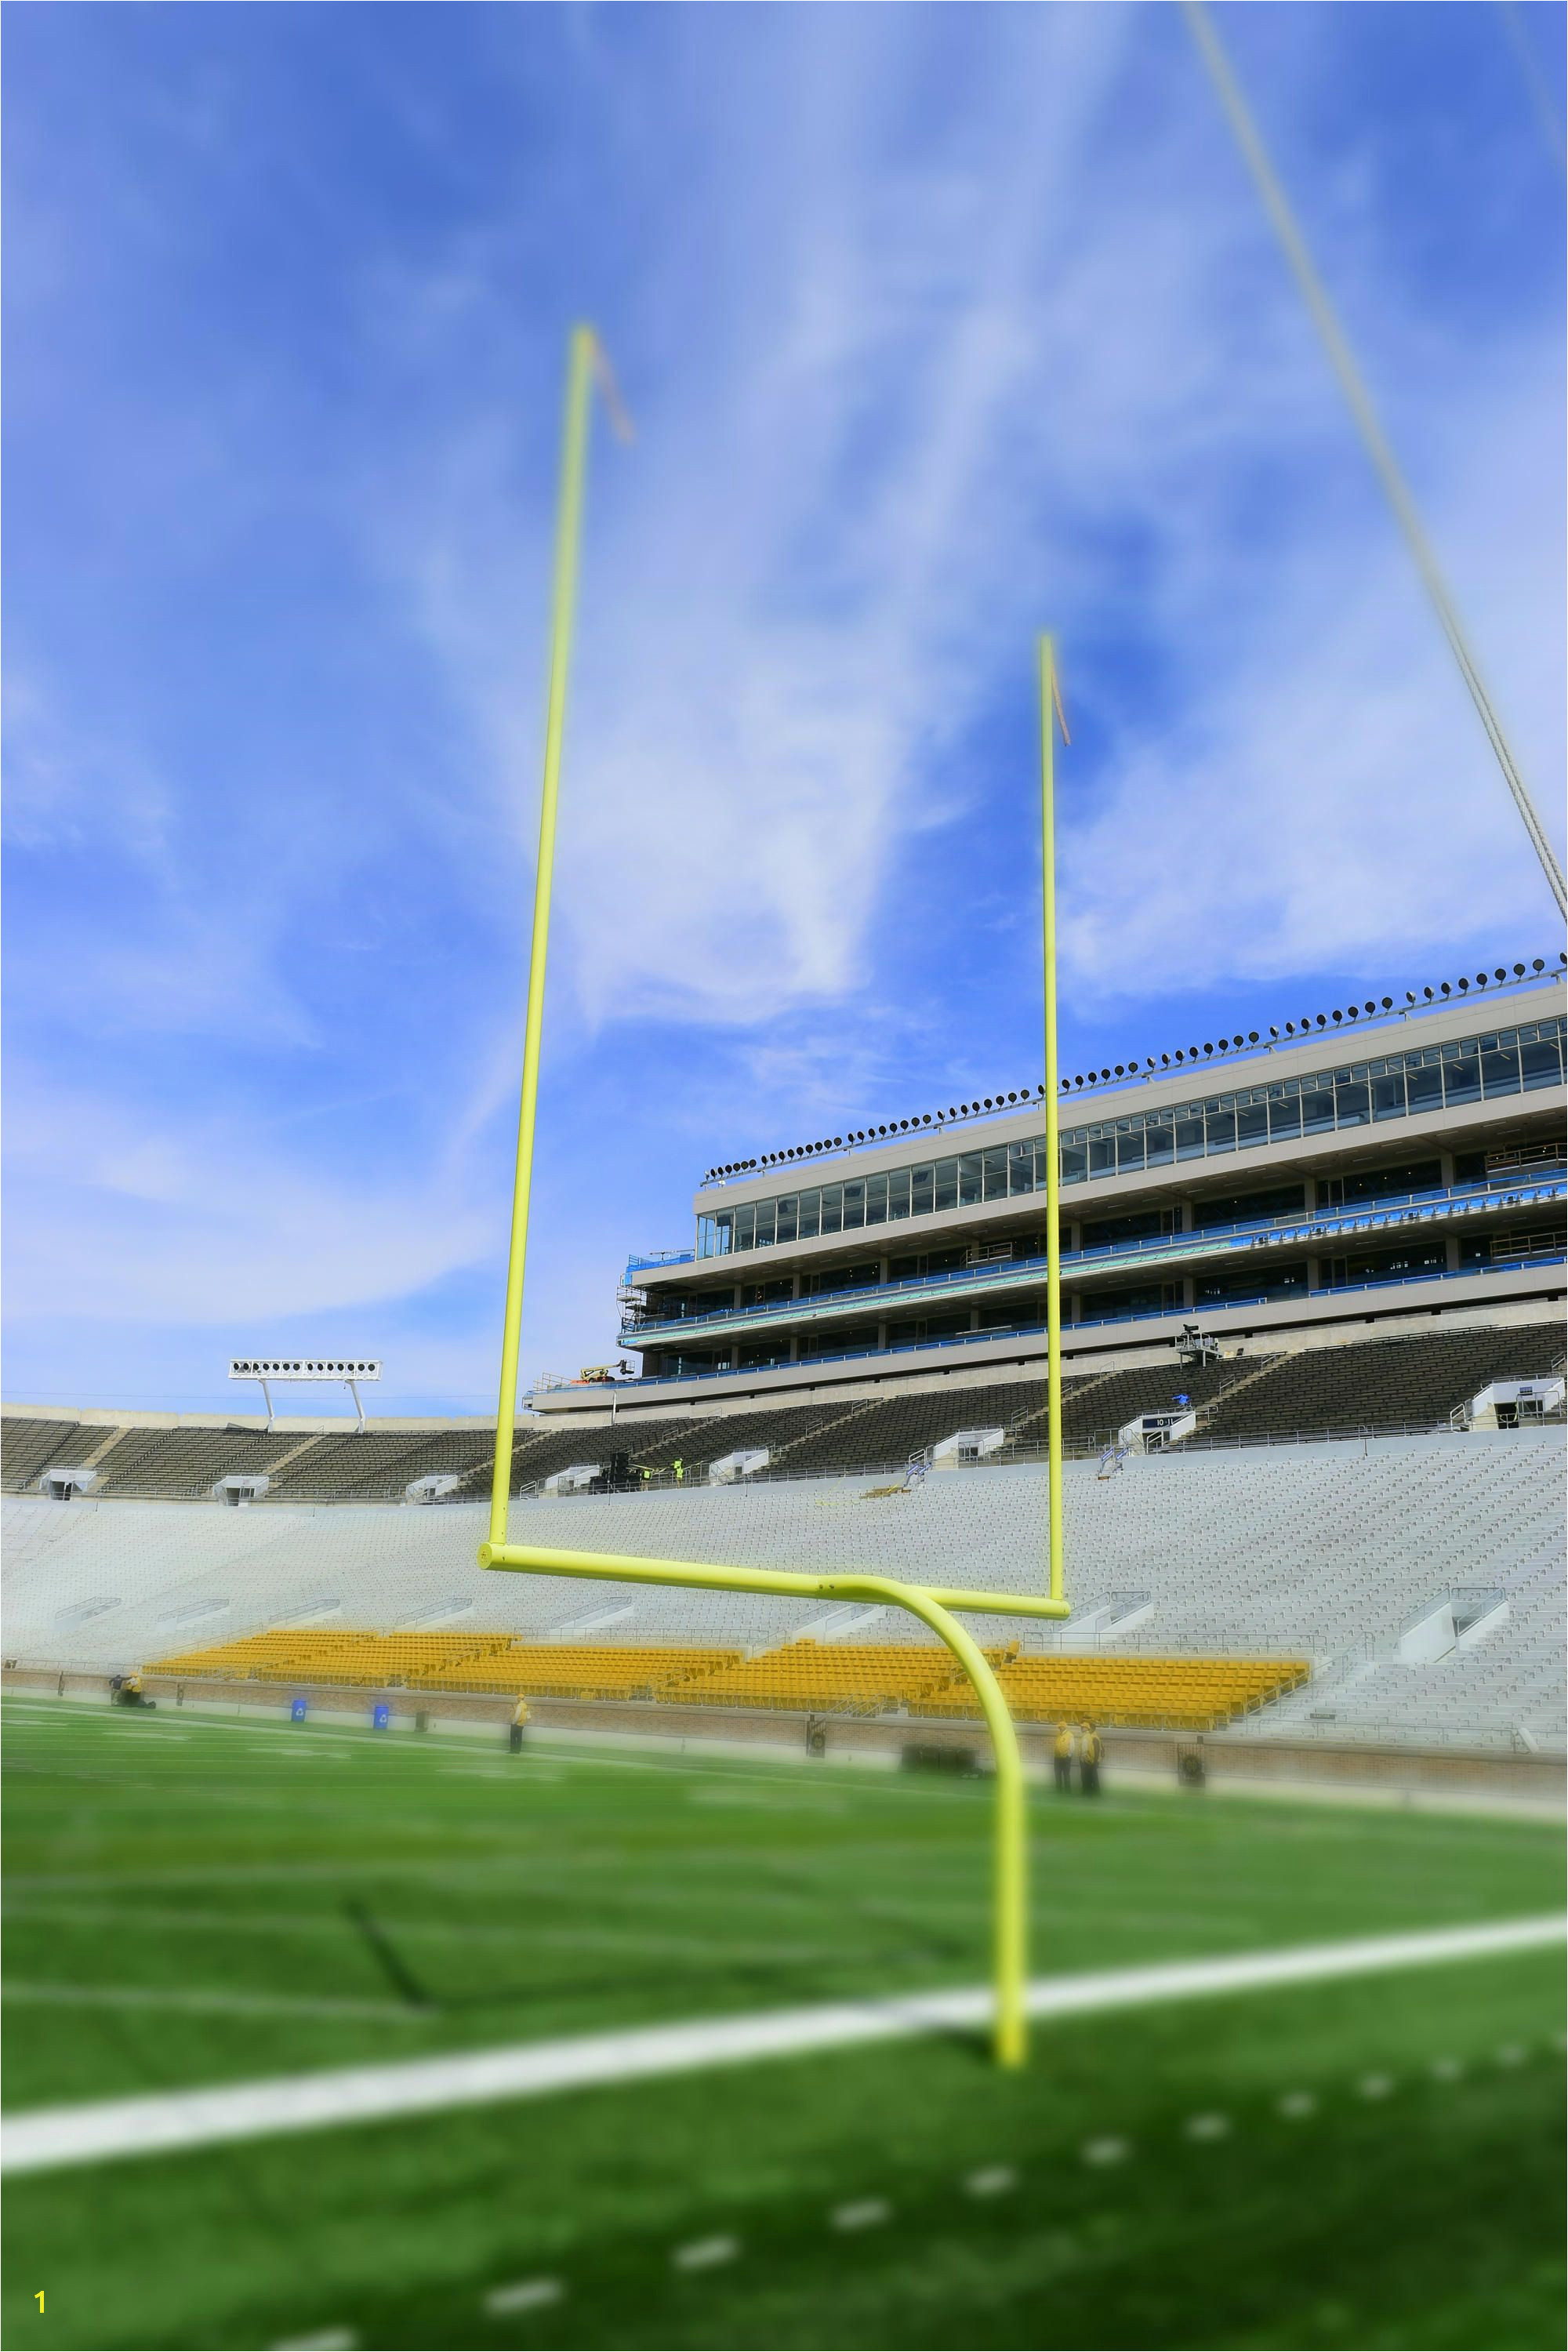 Notre Dame Stadium Notre Dame Football Vinyl Wall Decal Football Wall Decal Football Goal Posts Football graphy Infinite Graphics by